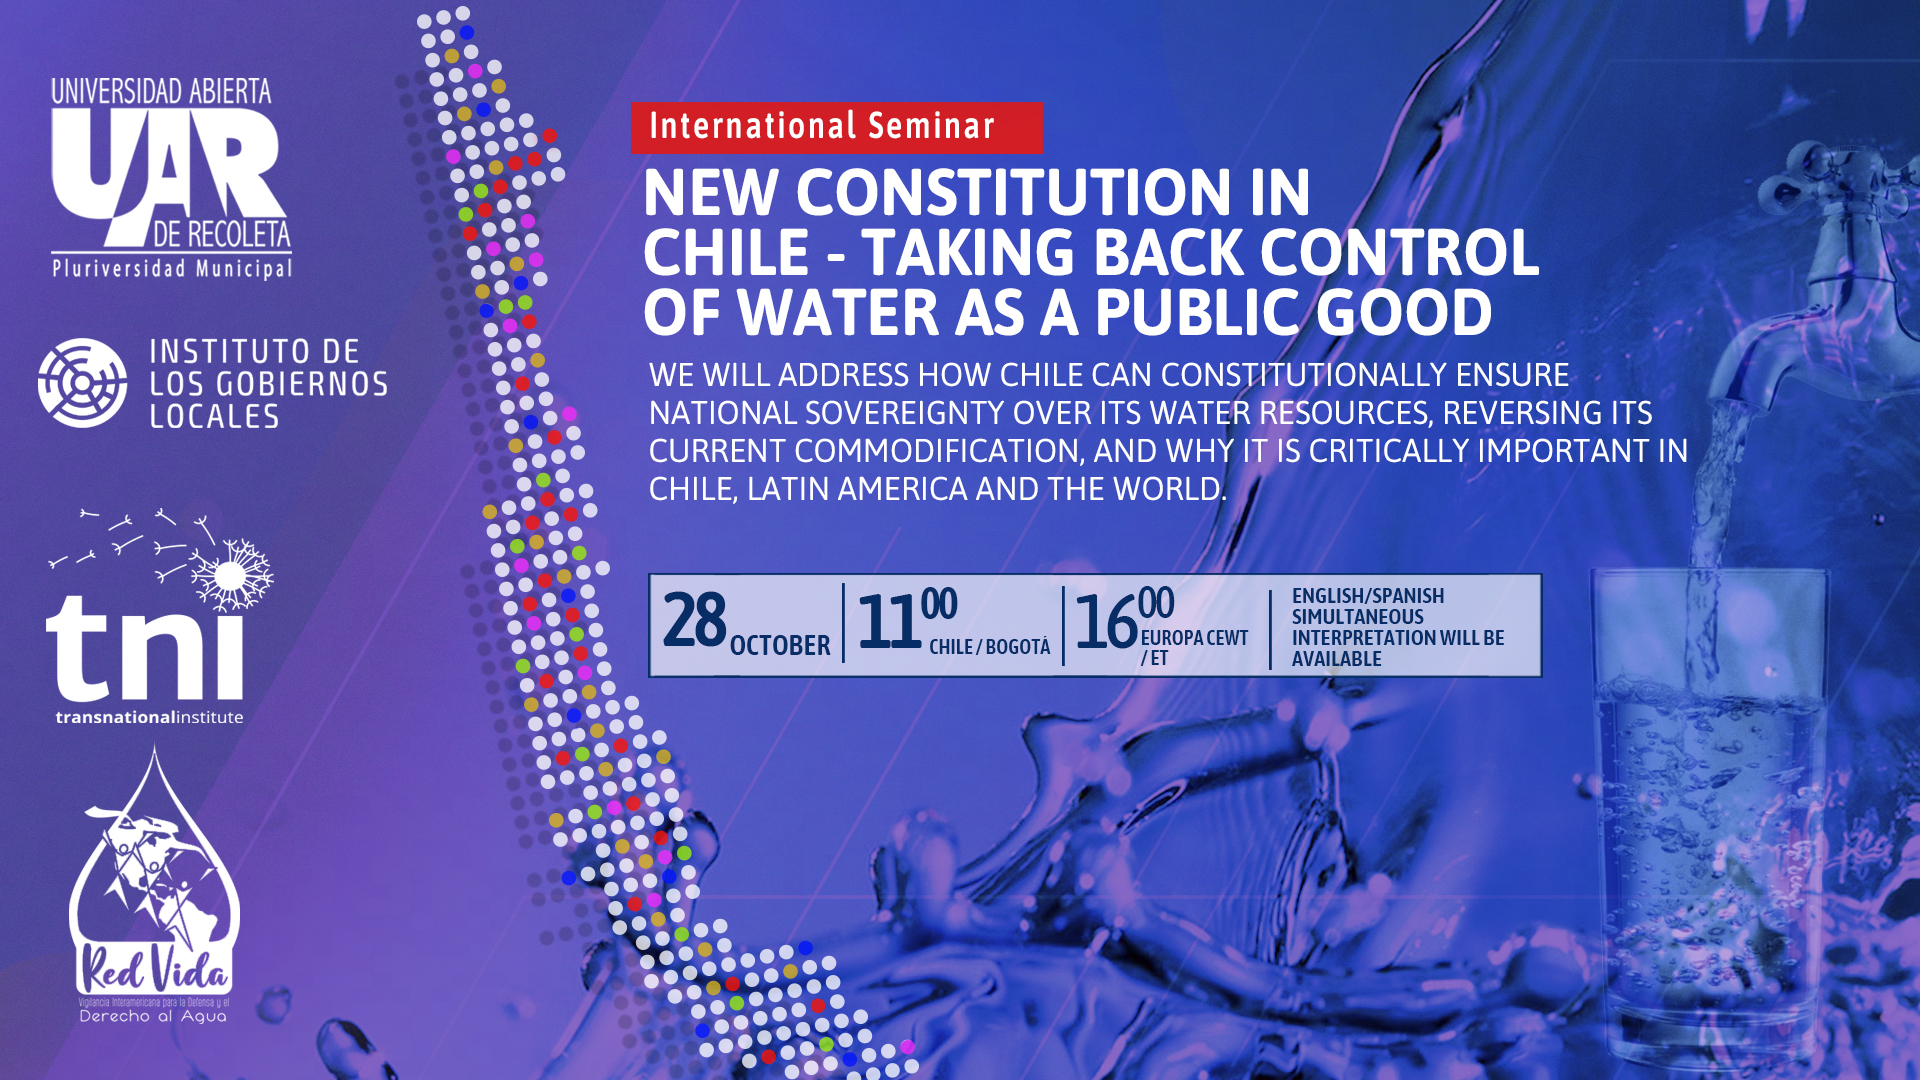 The New Constitution in Chile - Taking back control of water as a public good - Transnational Institute